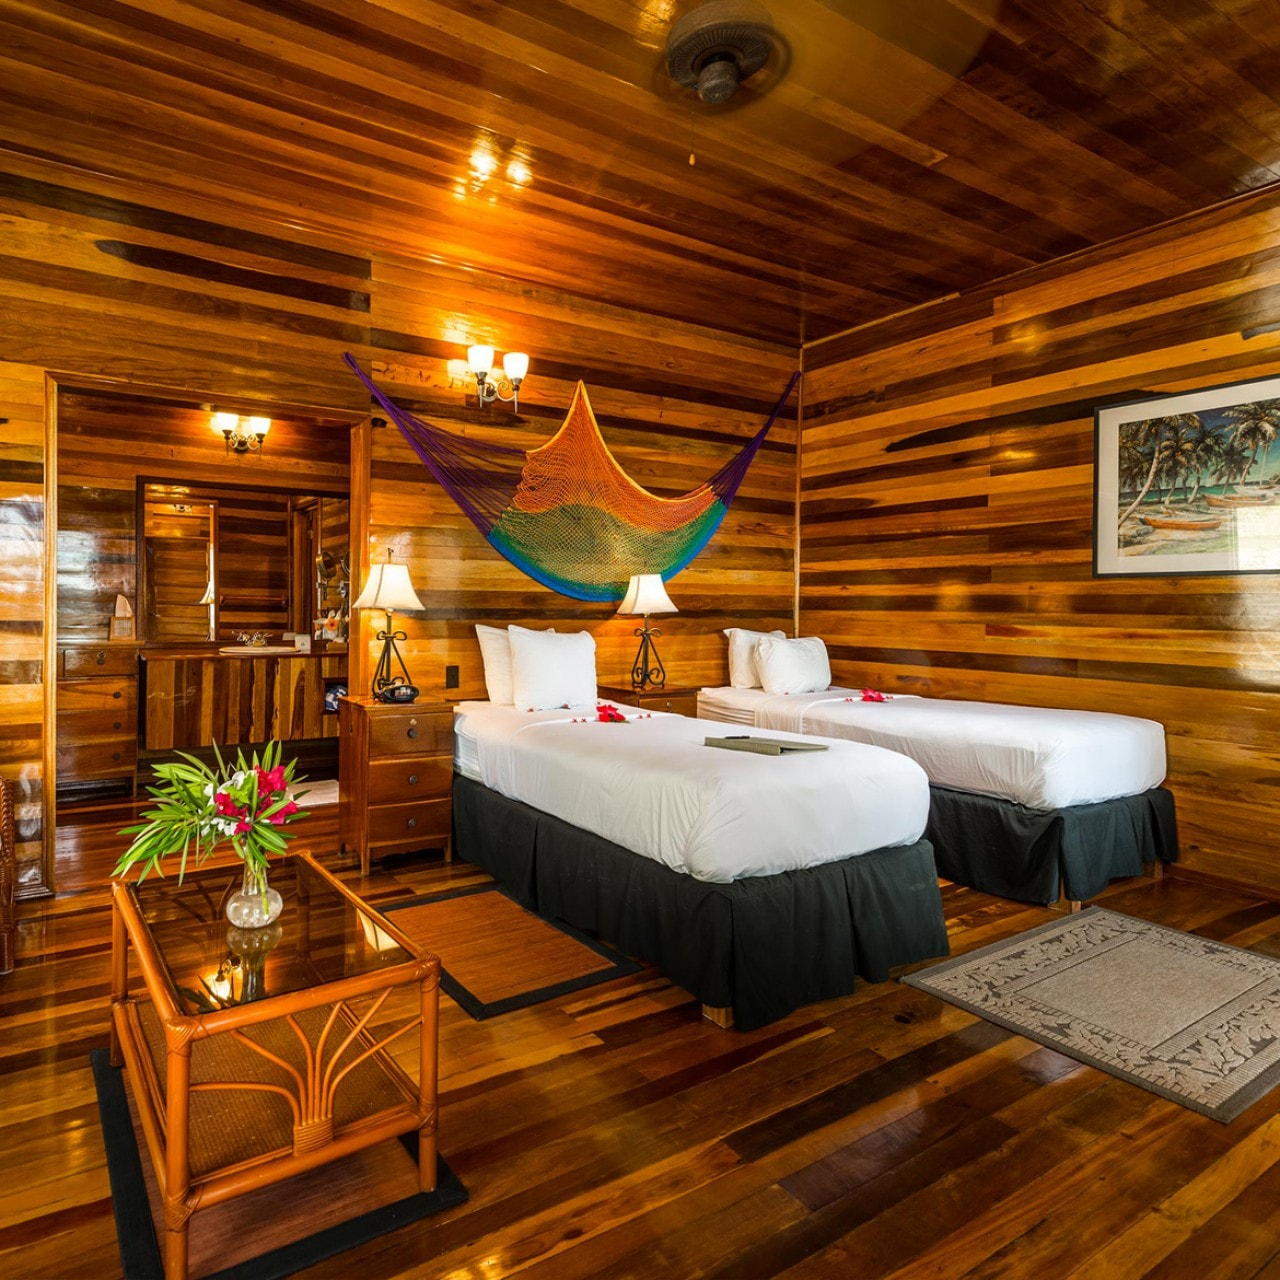 BZE_T_ISL_RESORT_DLX_ROOM.jpg